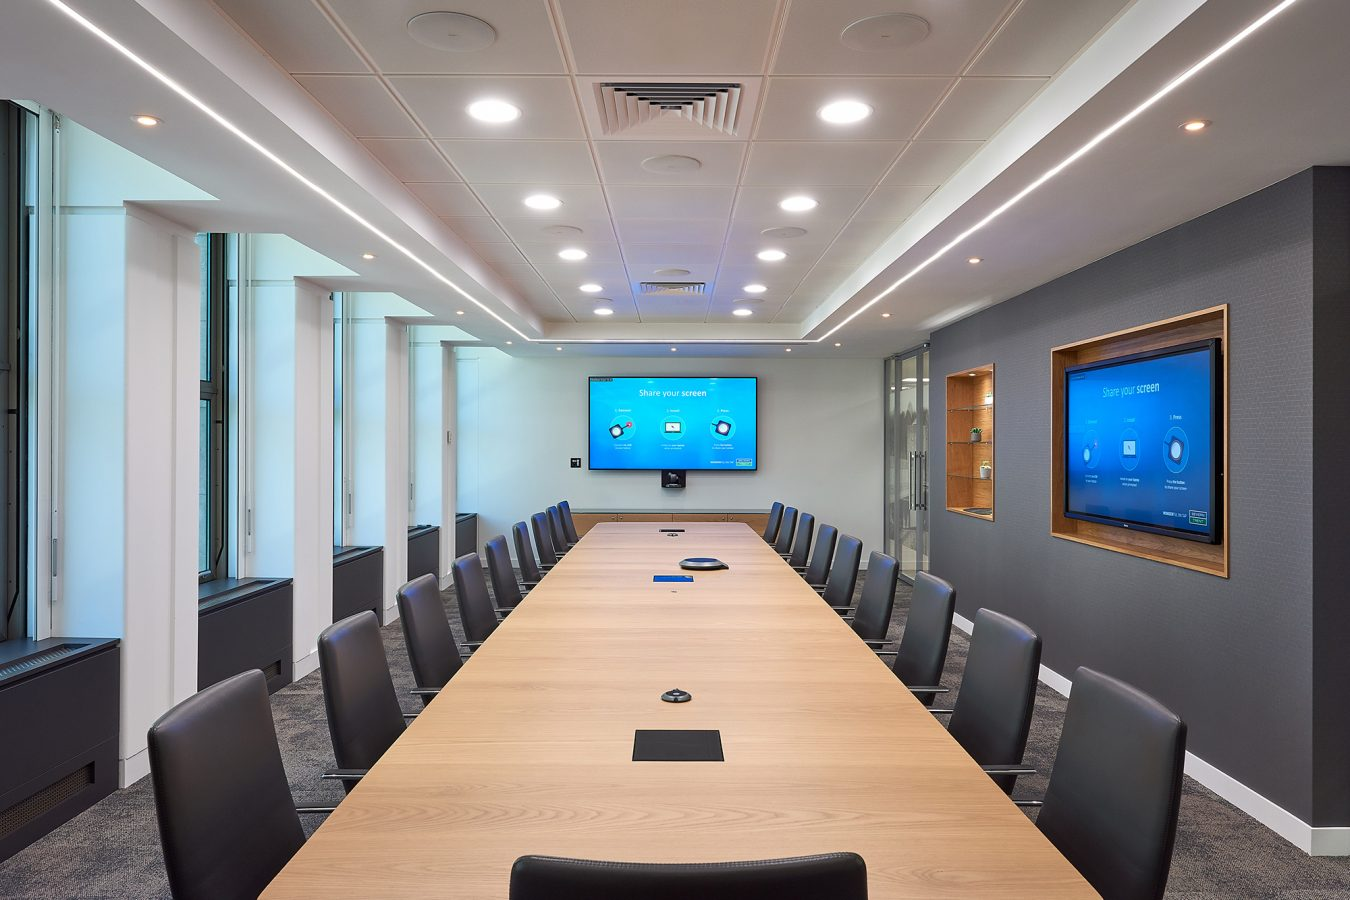 A new meeting room for office relocation with modern technology and functional furniture.